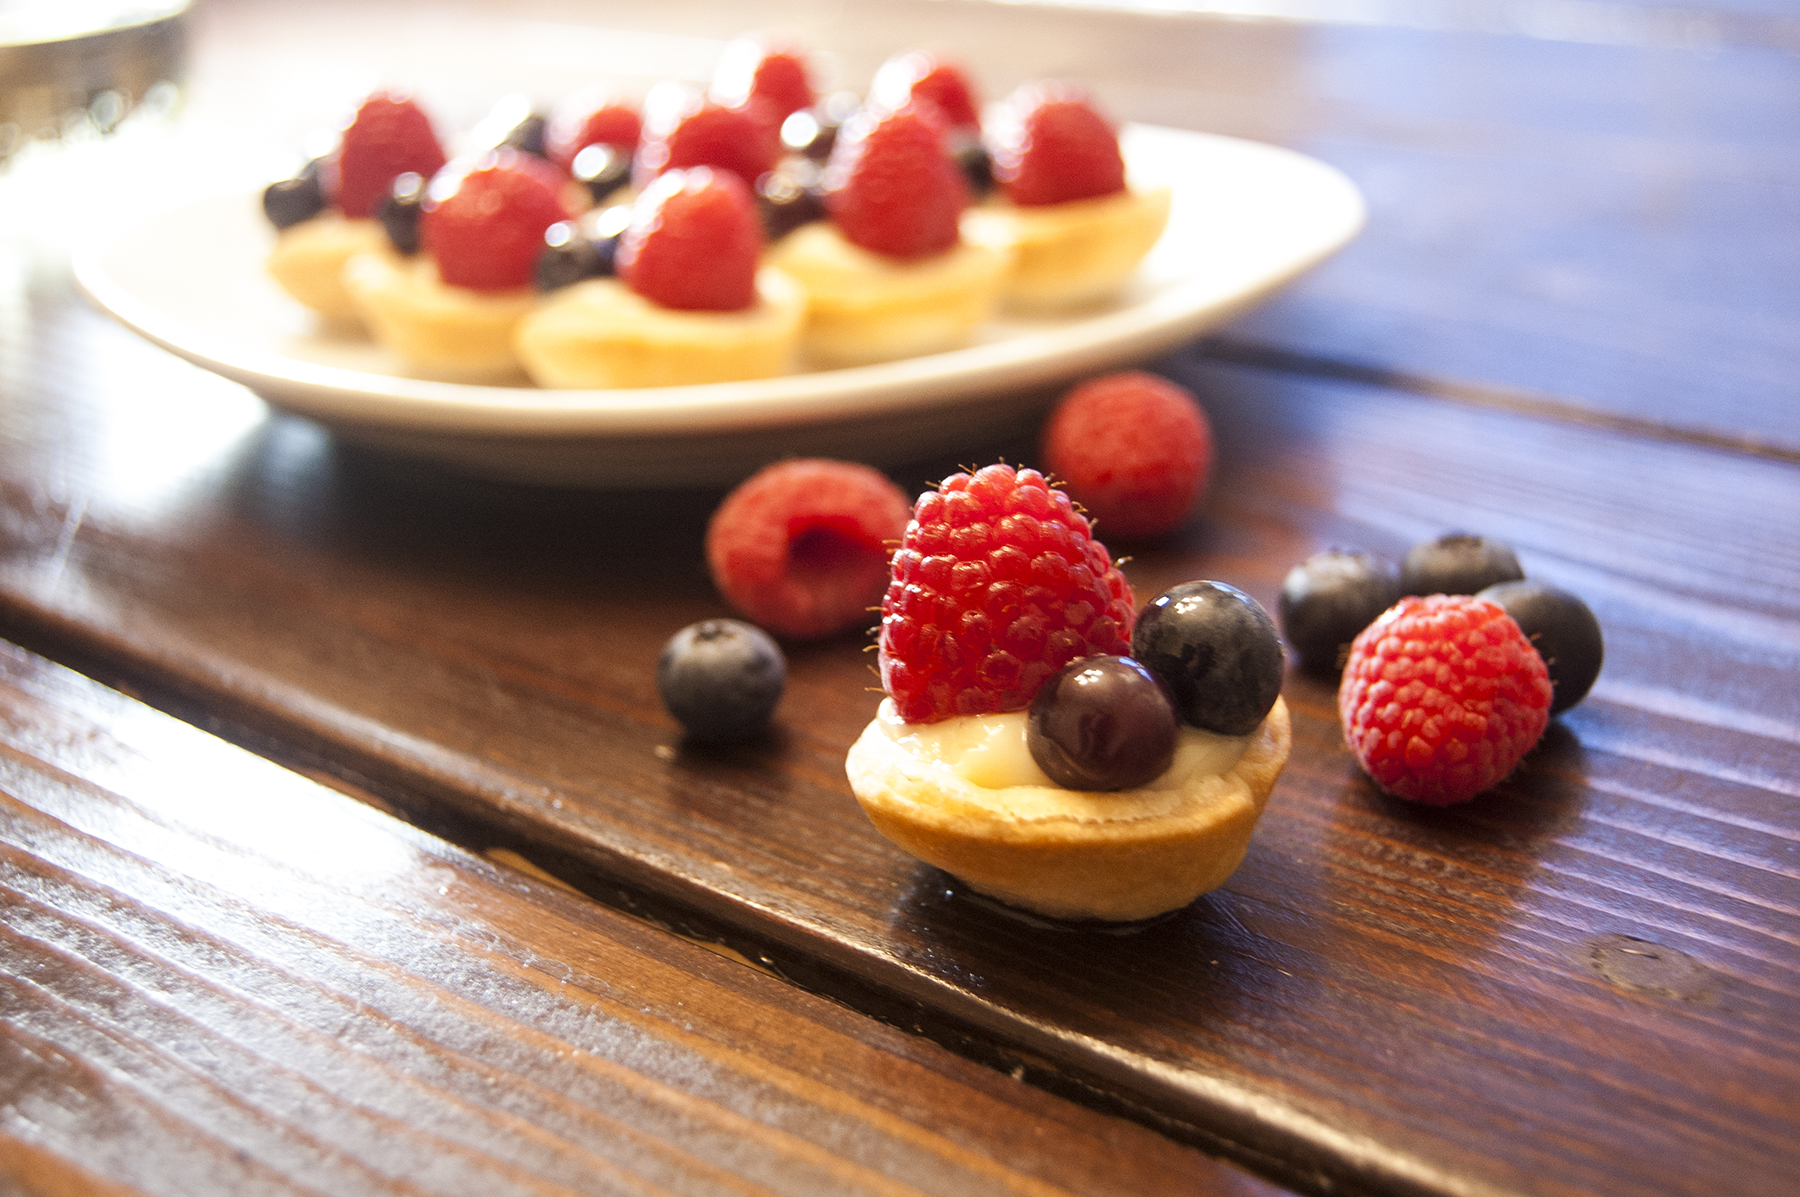 Fruit tart2.jpg